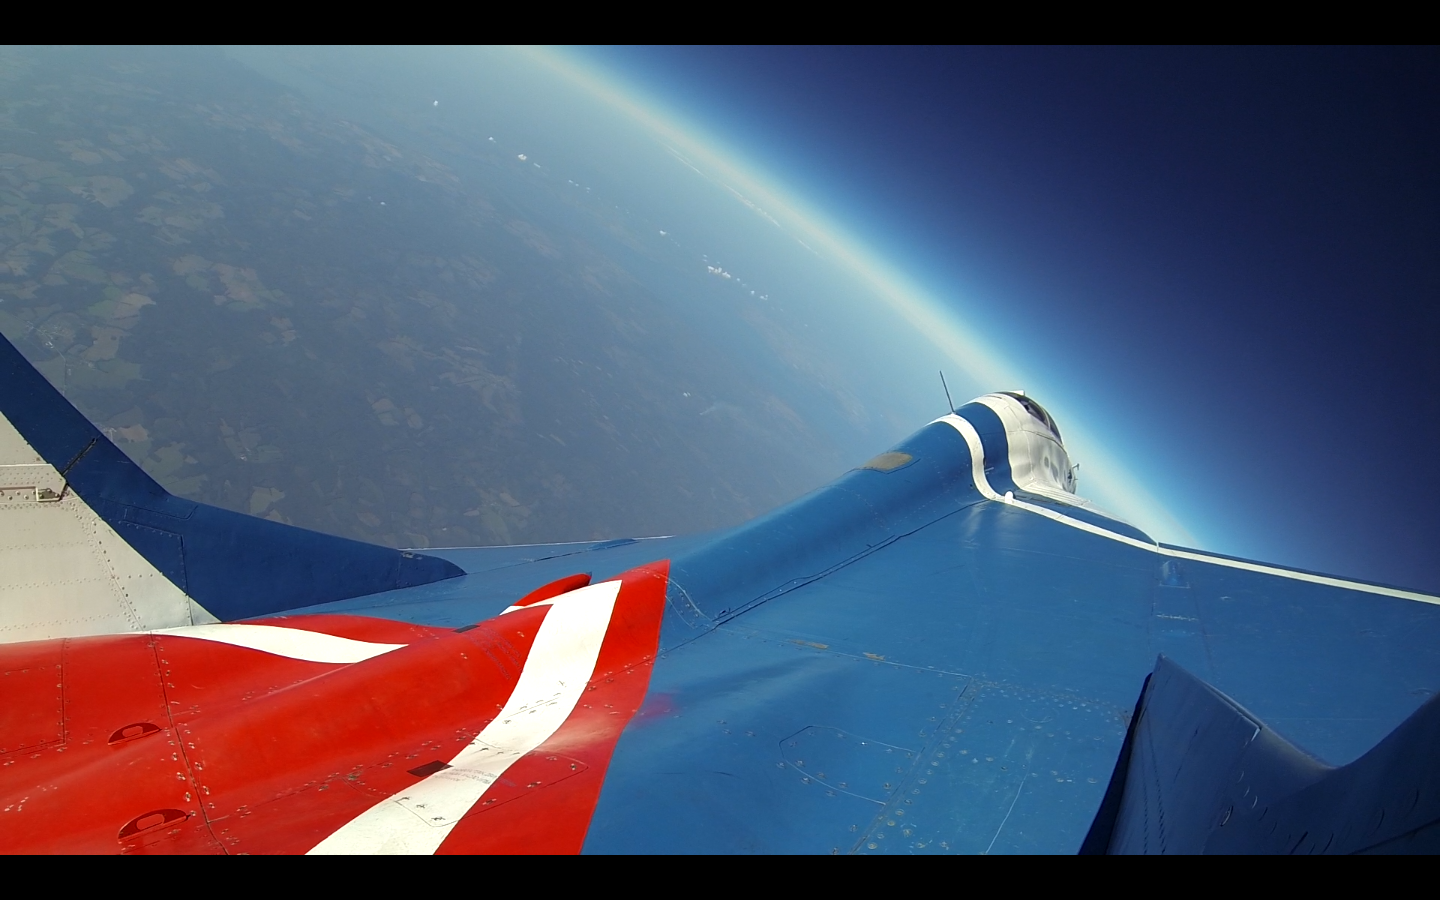 MiG-29 at the Edge of Space. Photo taken from the MiG-29 fin at more than 18km altitude.